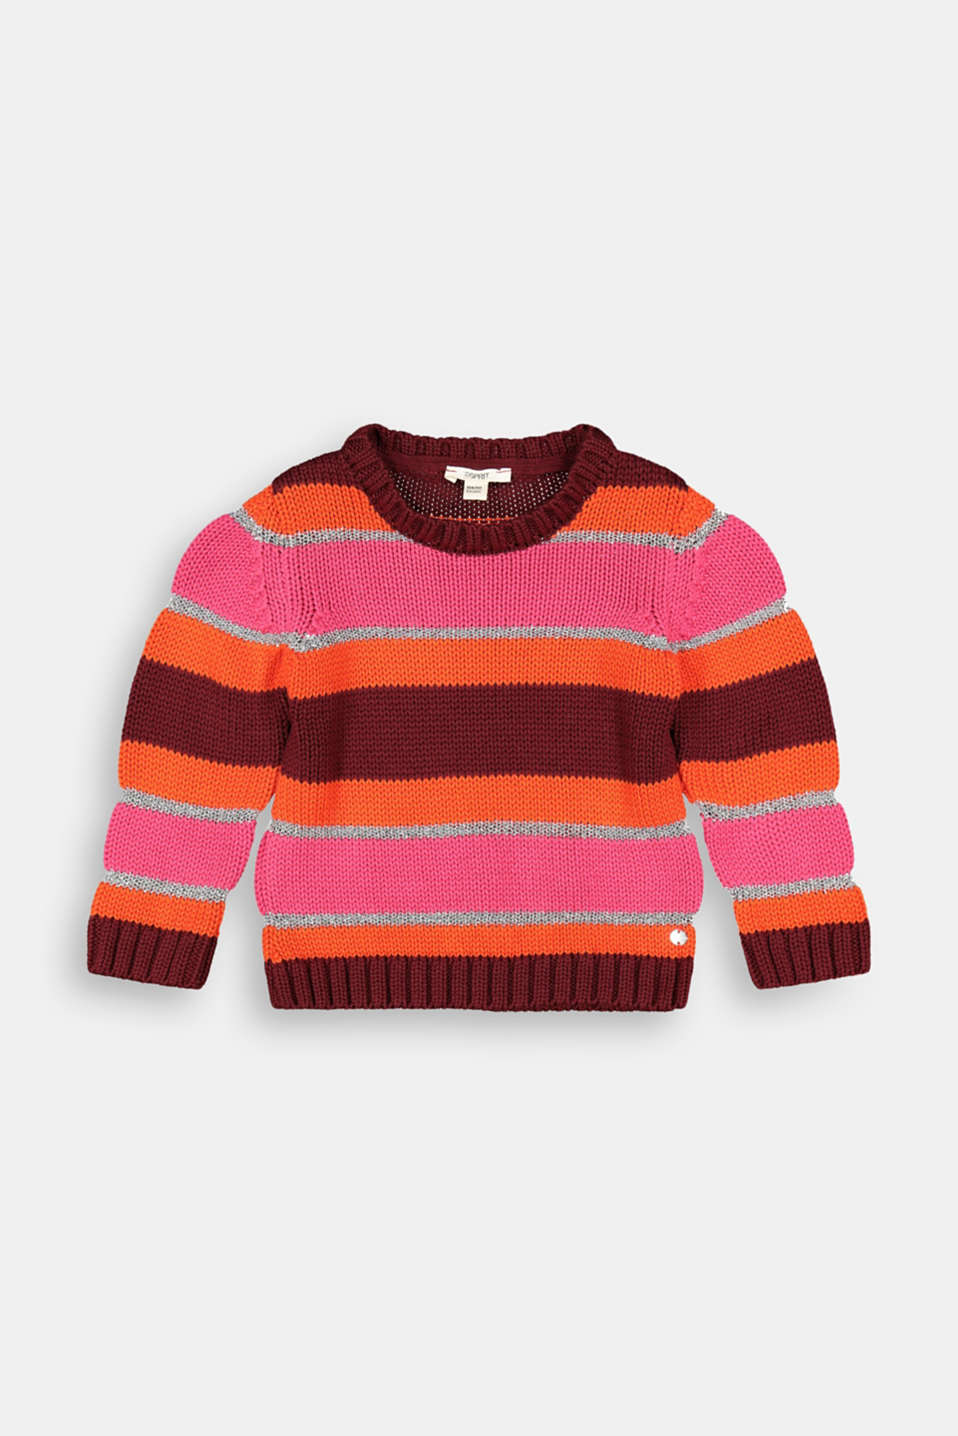 Esprit - Striped jumper with metallic effects